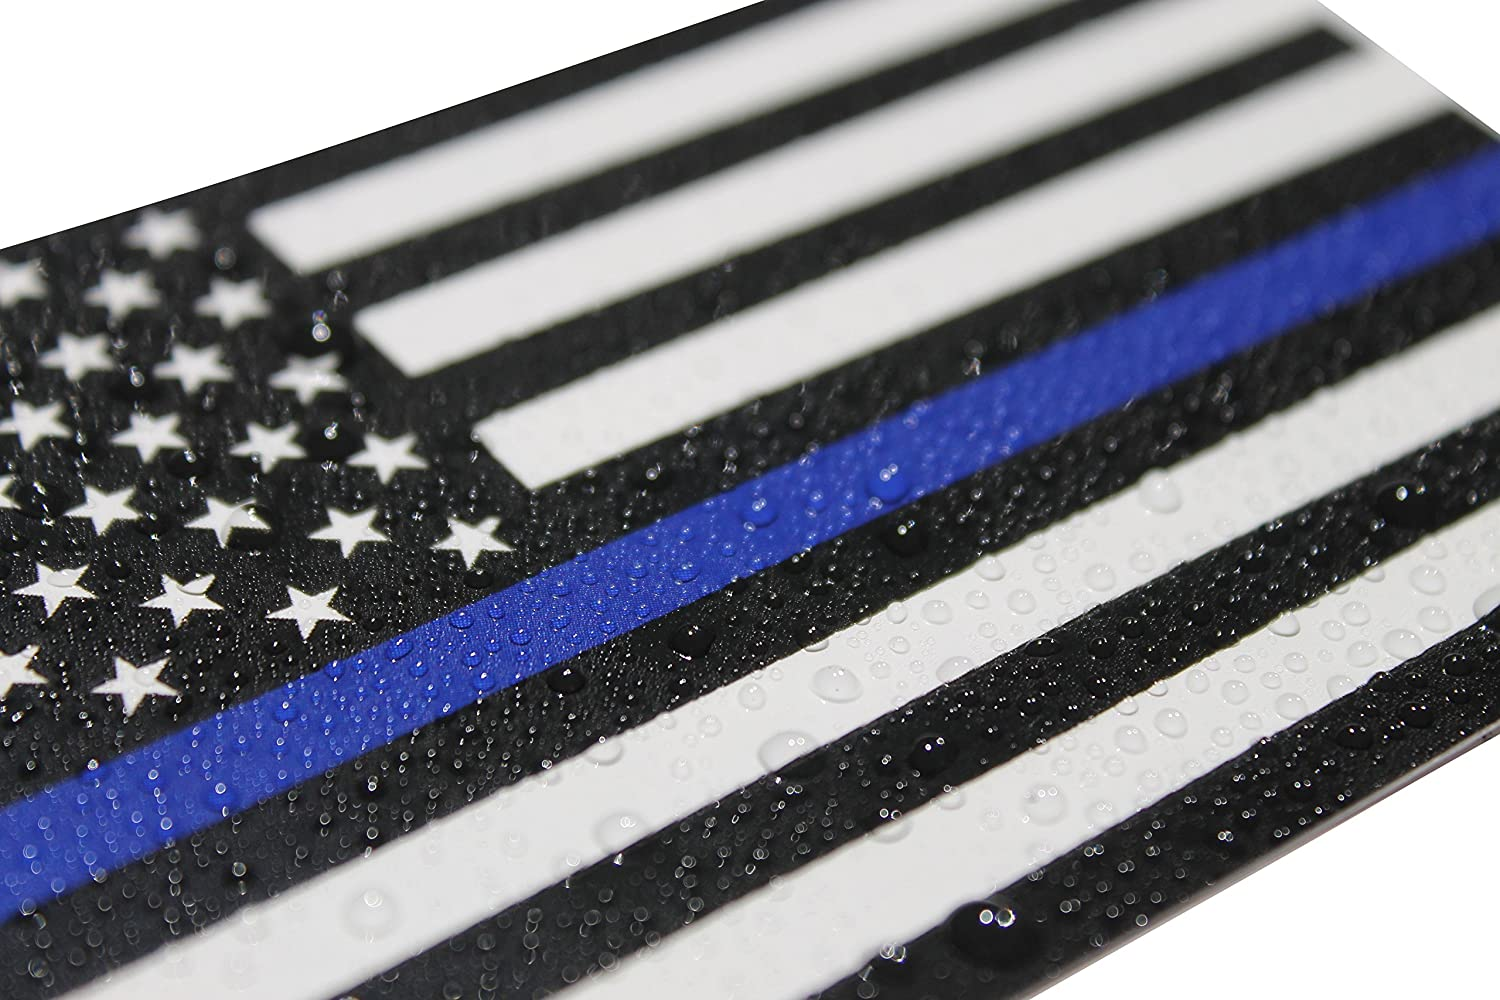 3x5 in Thin Blue Line Flag Decals 10-pack In Support of Police and Law Enforcement Officers Fine Line Flag Auto Decals 10 Black White and Blue American Flag Stickers for Cars and Trucks